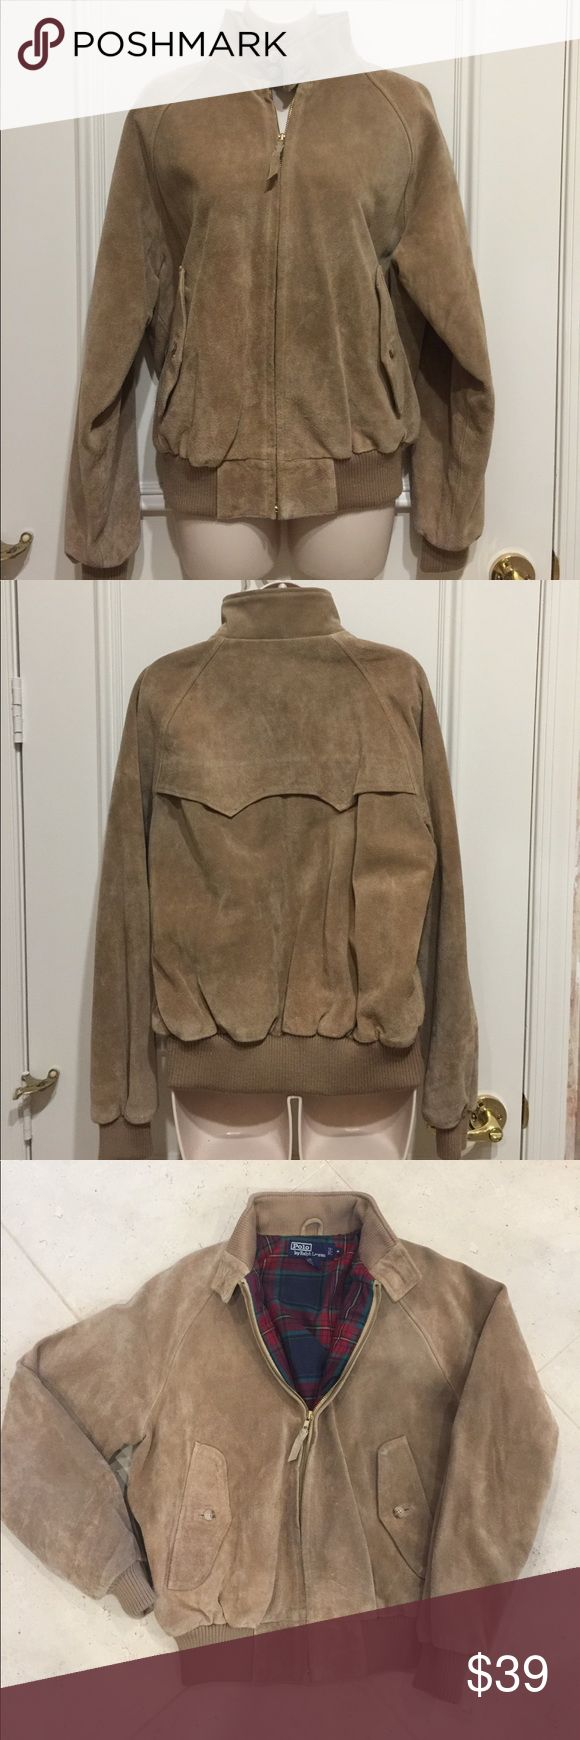 Vintage 80s, 90s Polo by Ralph Lauren Suede Jacket Polo by Ralph Lauren Tan Suede Zip Up Jacket with plaid lining, and slight elasticity around waist and arms to provide insulation and warmth. Size Medium. Polo by Ralph Lauren Jackets & Coats